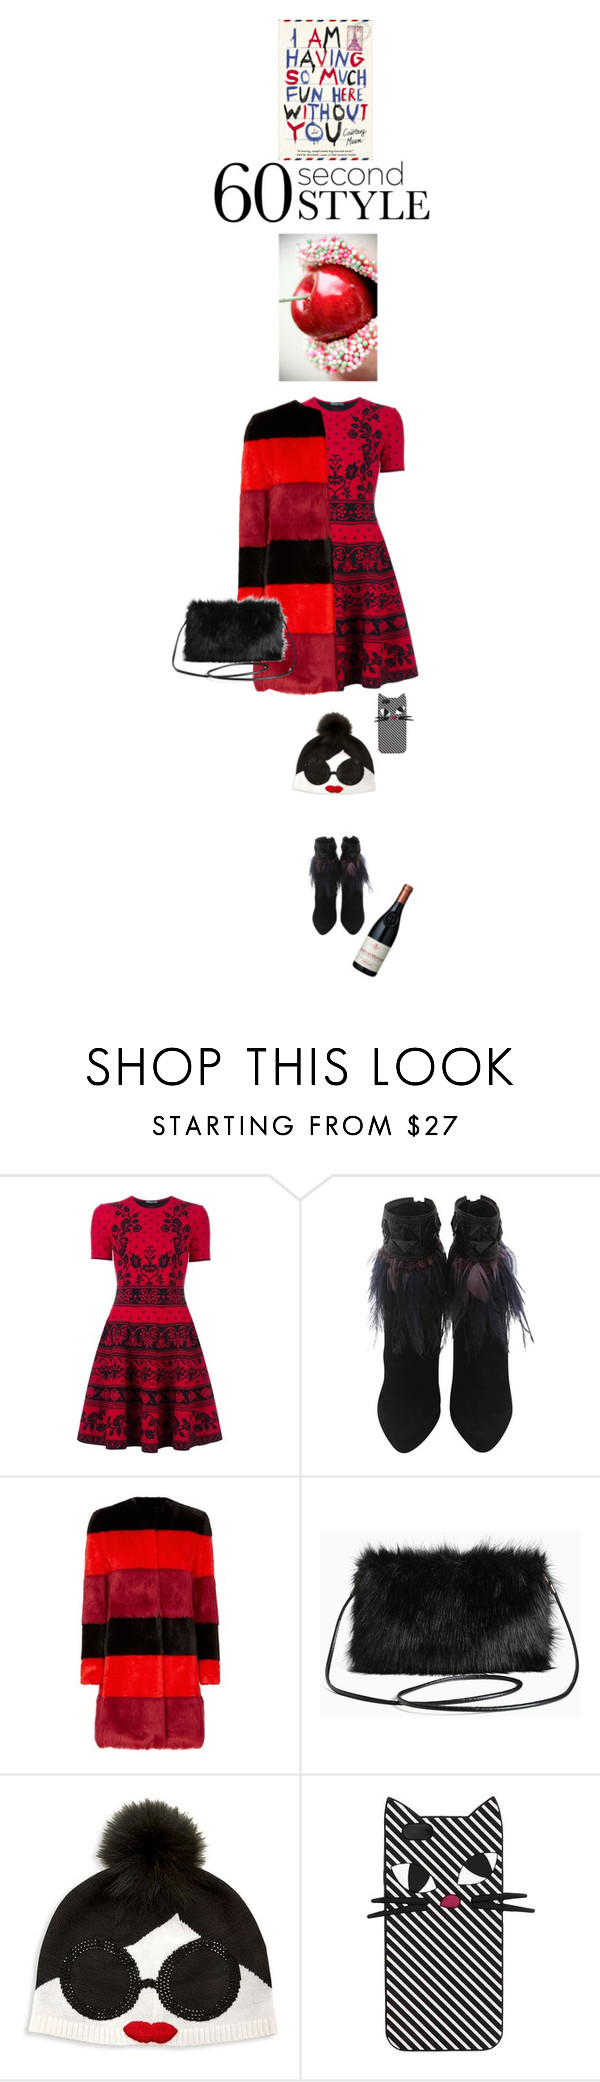 """""""You will not ask me for dinner with family again!"""" by no-where-girl ❤ liked on Polyvore featuring Alexander McQueen, Christian Dior, AINEA, Torrid, Alice + Olivia, Lulu Guinness and familydinner"""